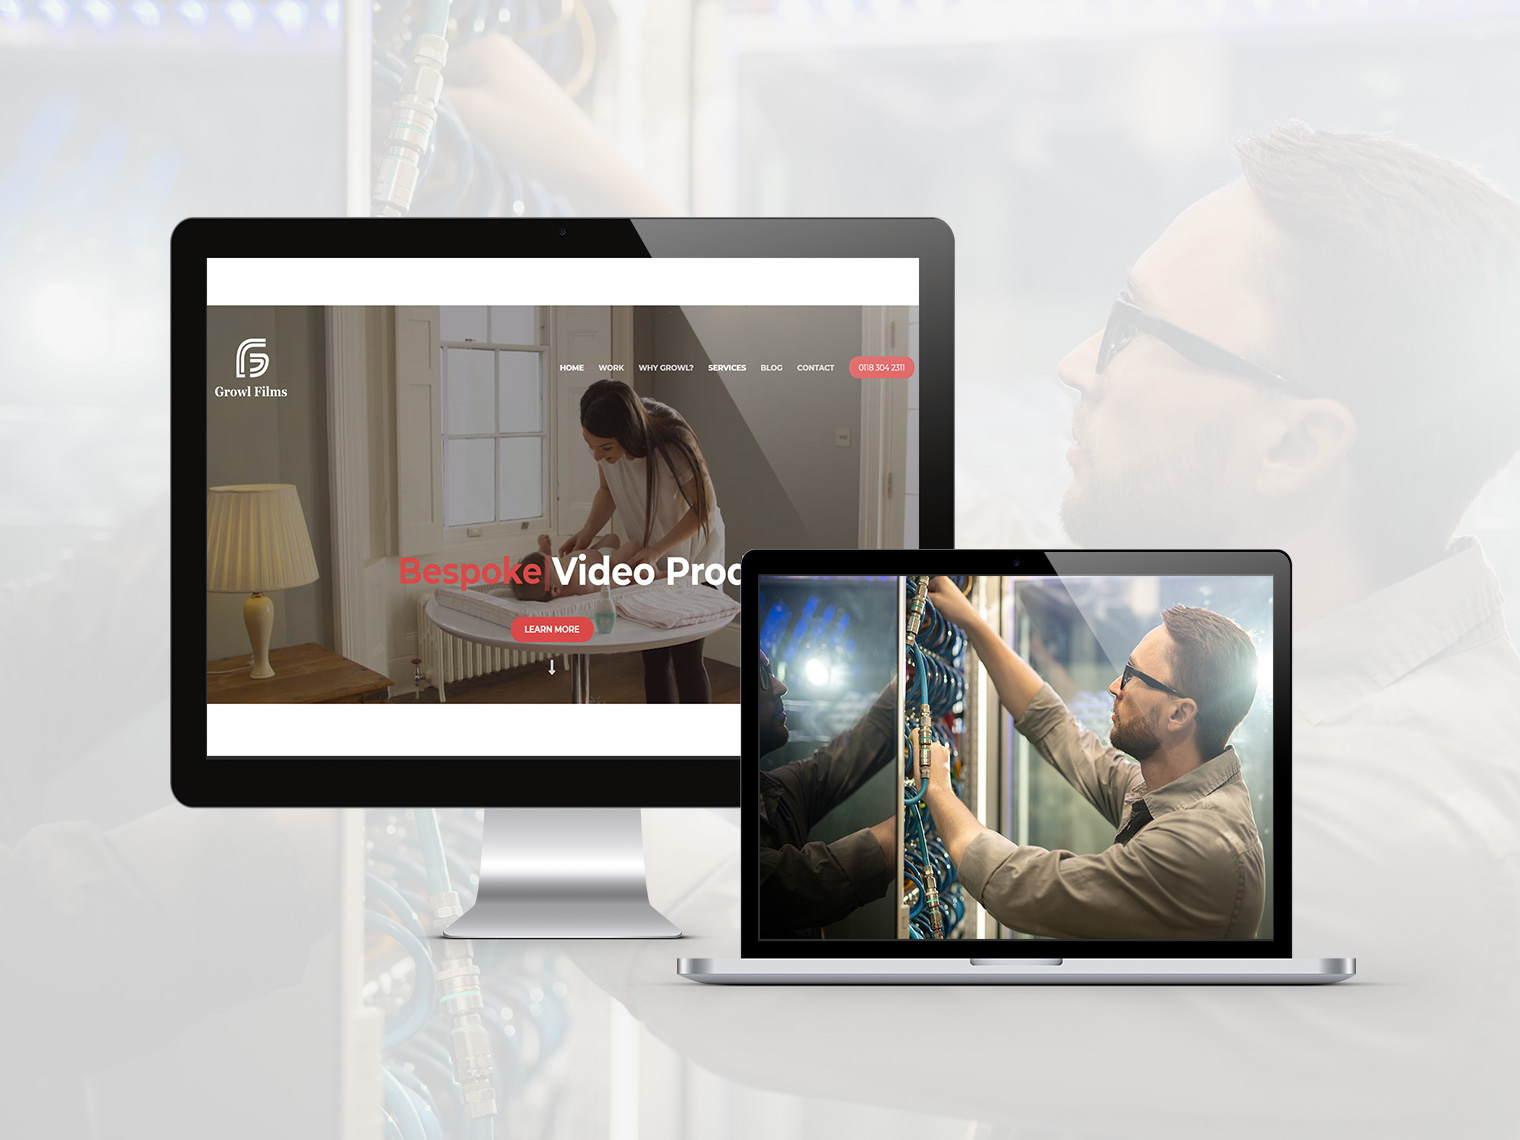 An image of two Apple devices displaying the growl films hosting home page on one device and a picture of a person interacting with some cables in another